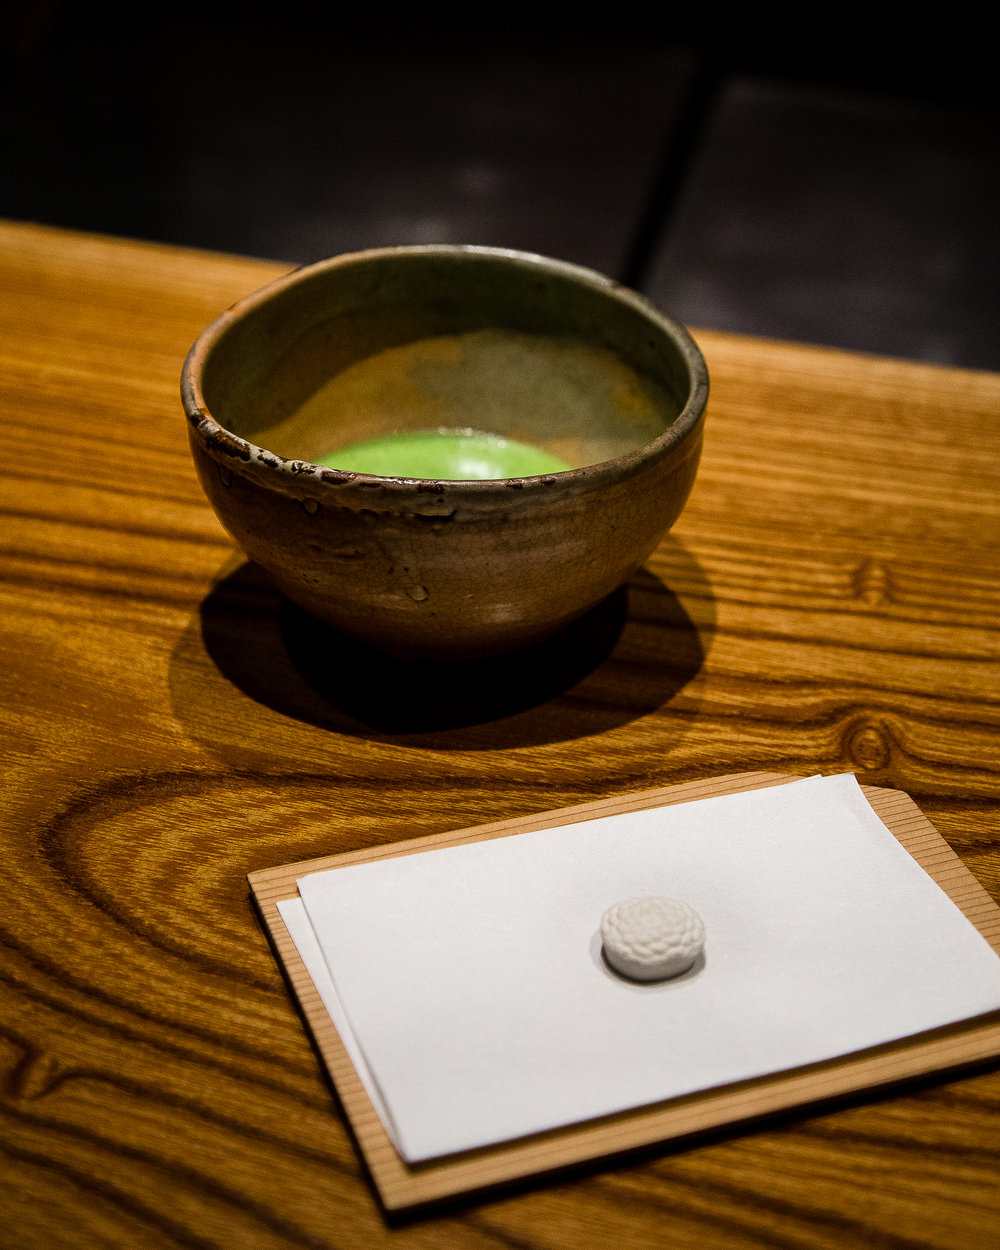 Ceremonial matcha from ippodo with a small sugar candy from Kagizen-Yoshifusa in Kyoto